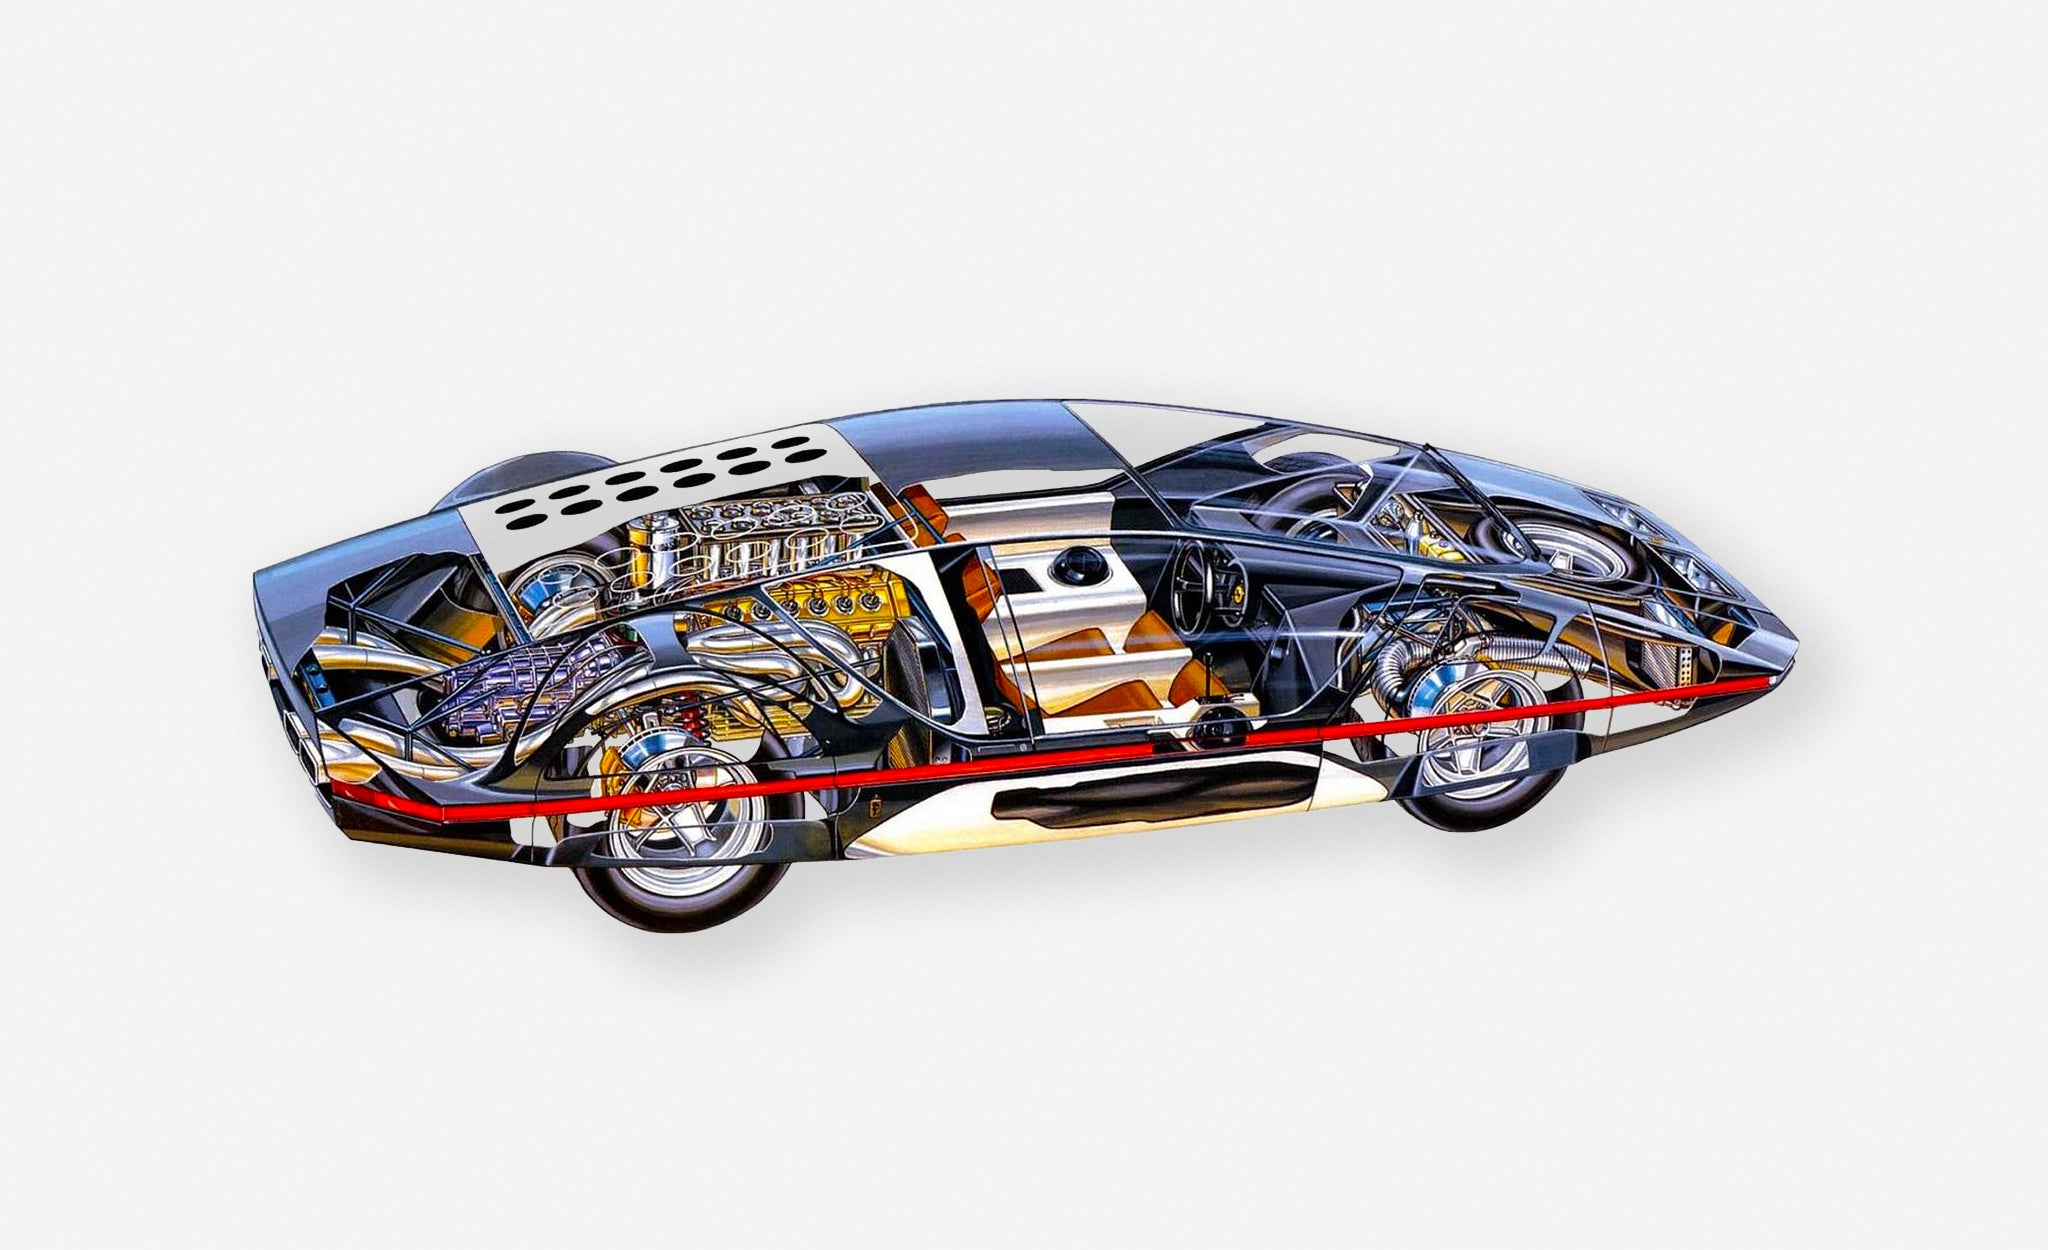 Ferrari 512s Modulo concept car cutaway drawing showing the inner workings and technical details for A Collected Man London